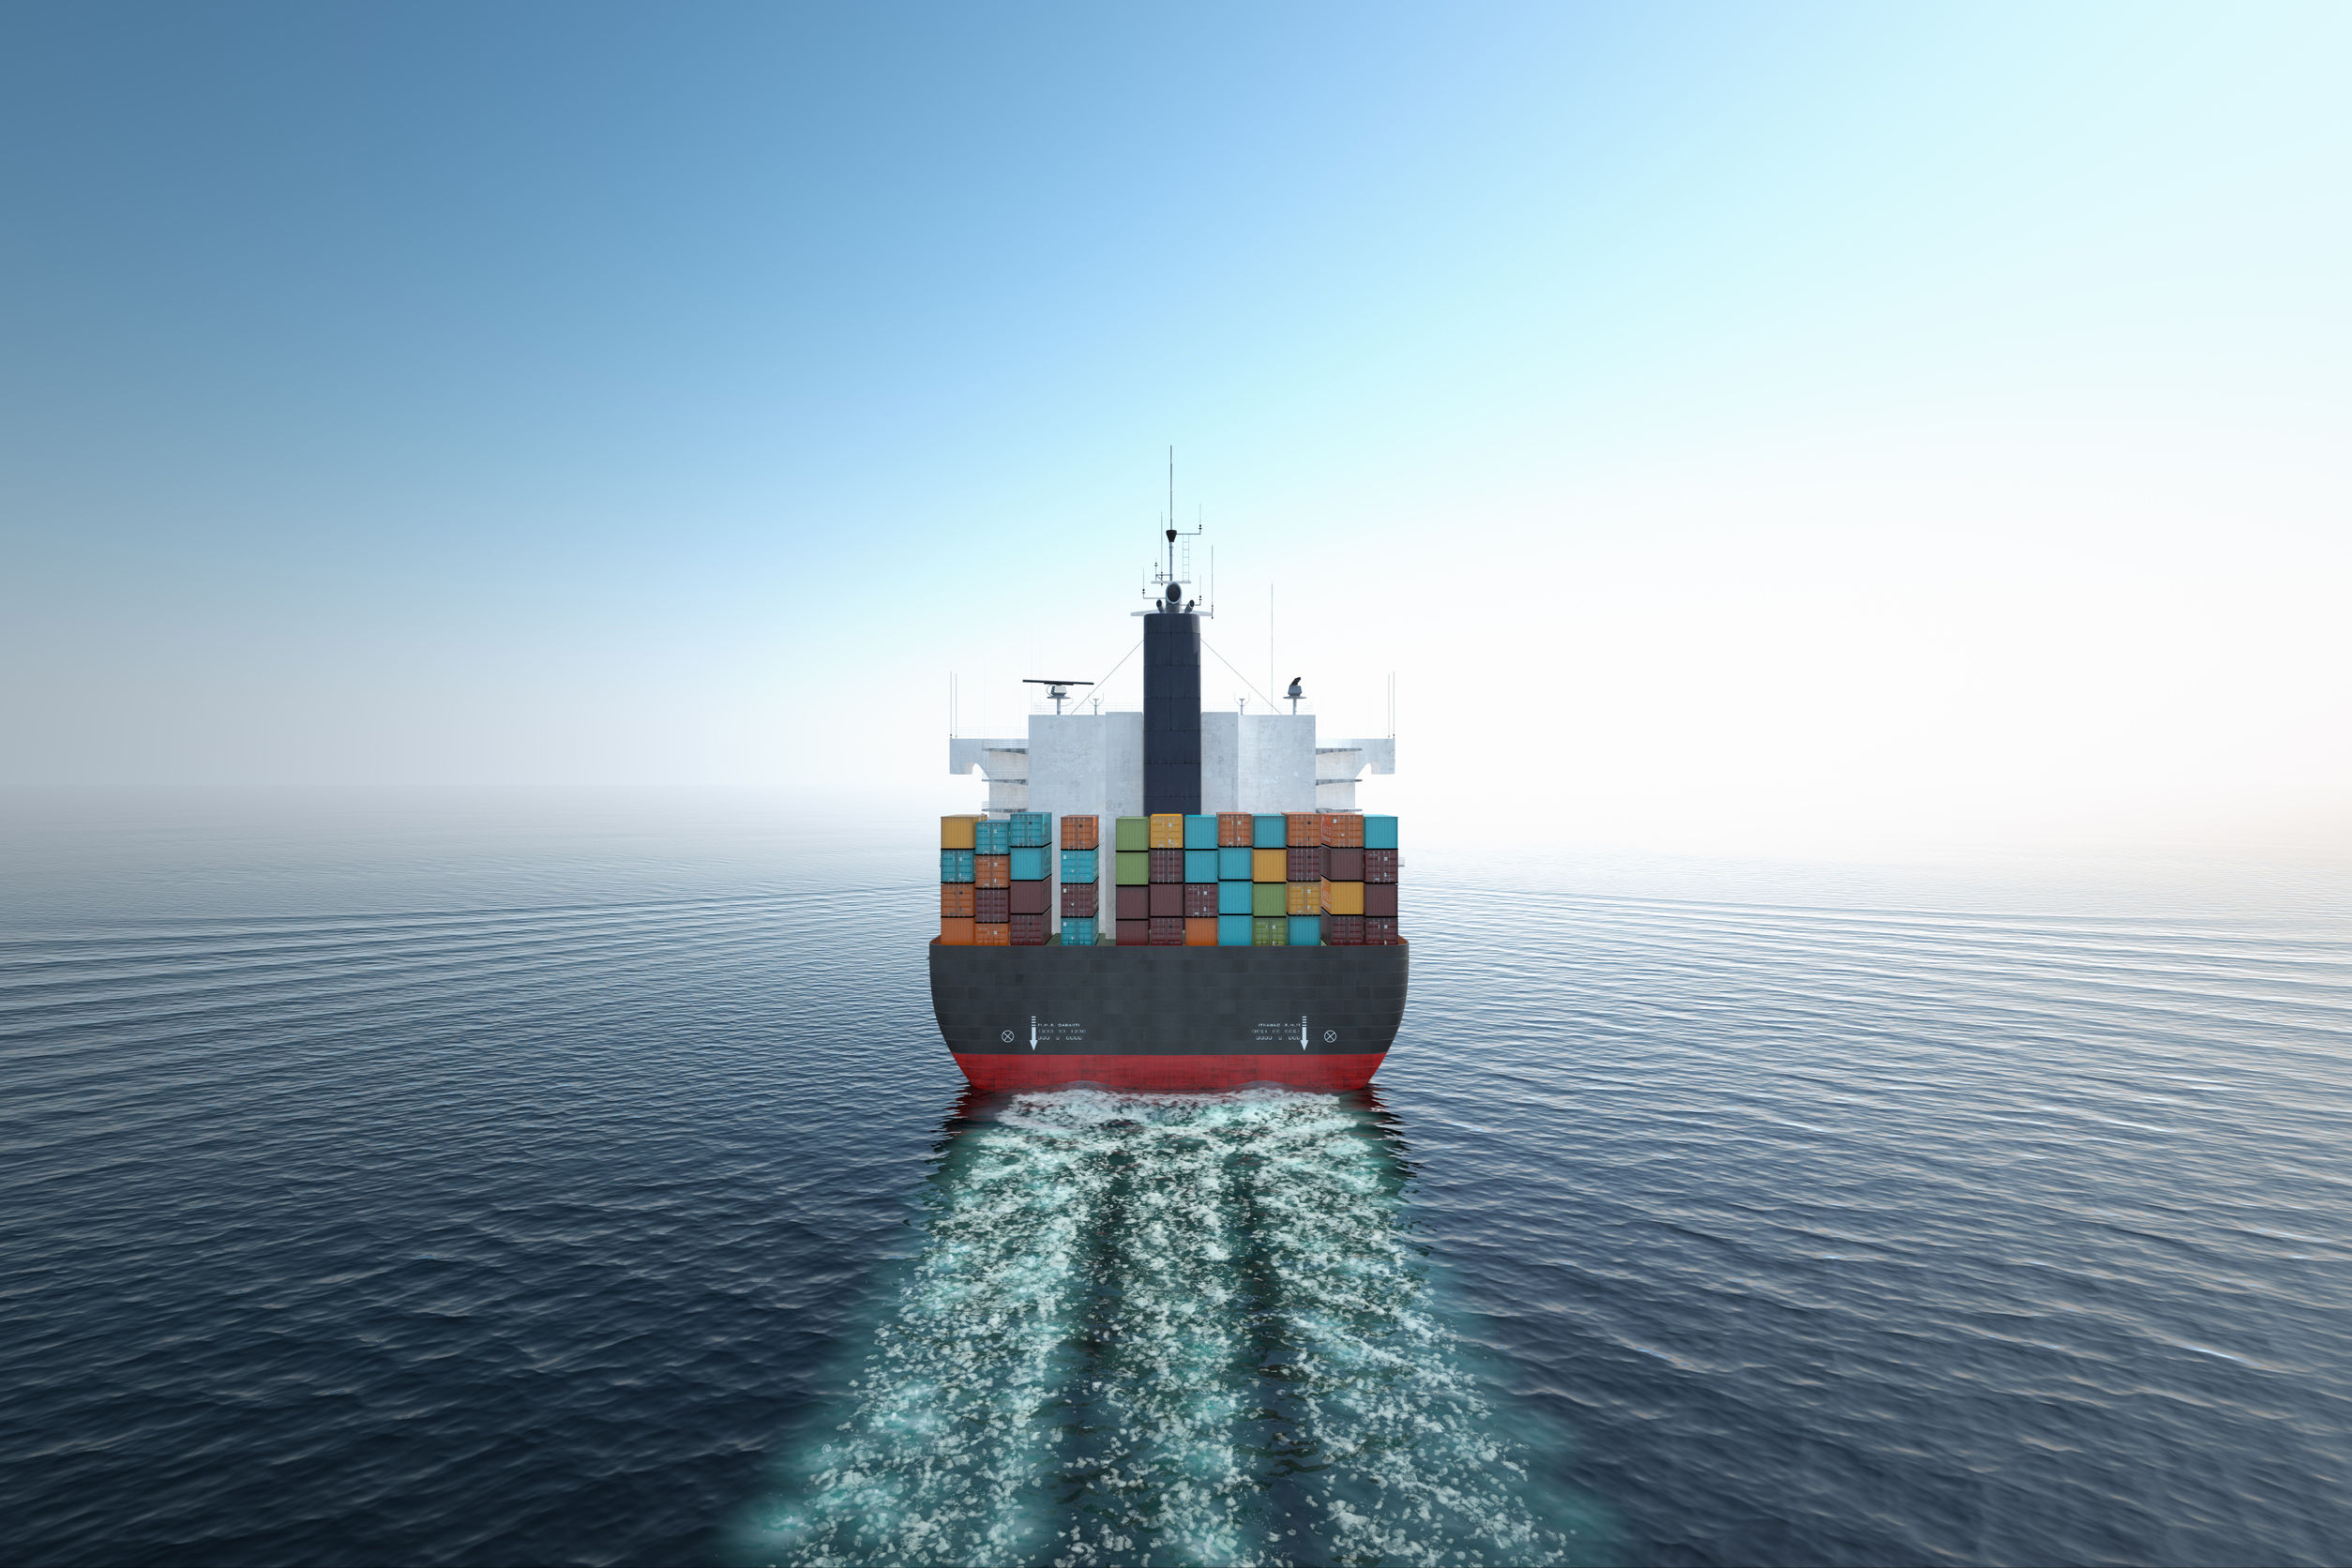 5 Future Trends In Shipping Industry To Look Out For